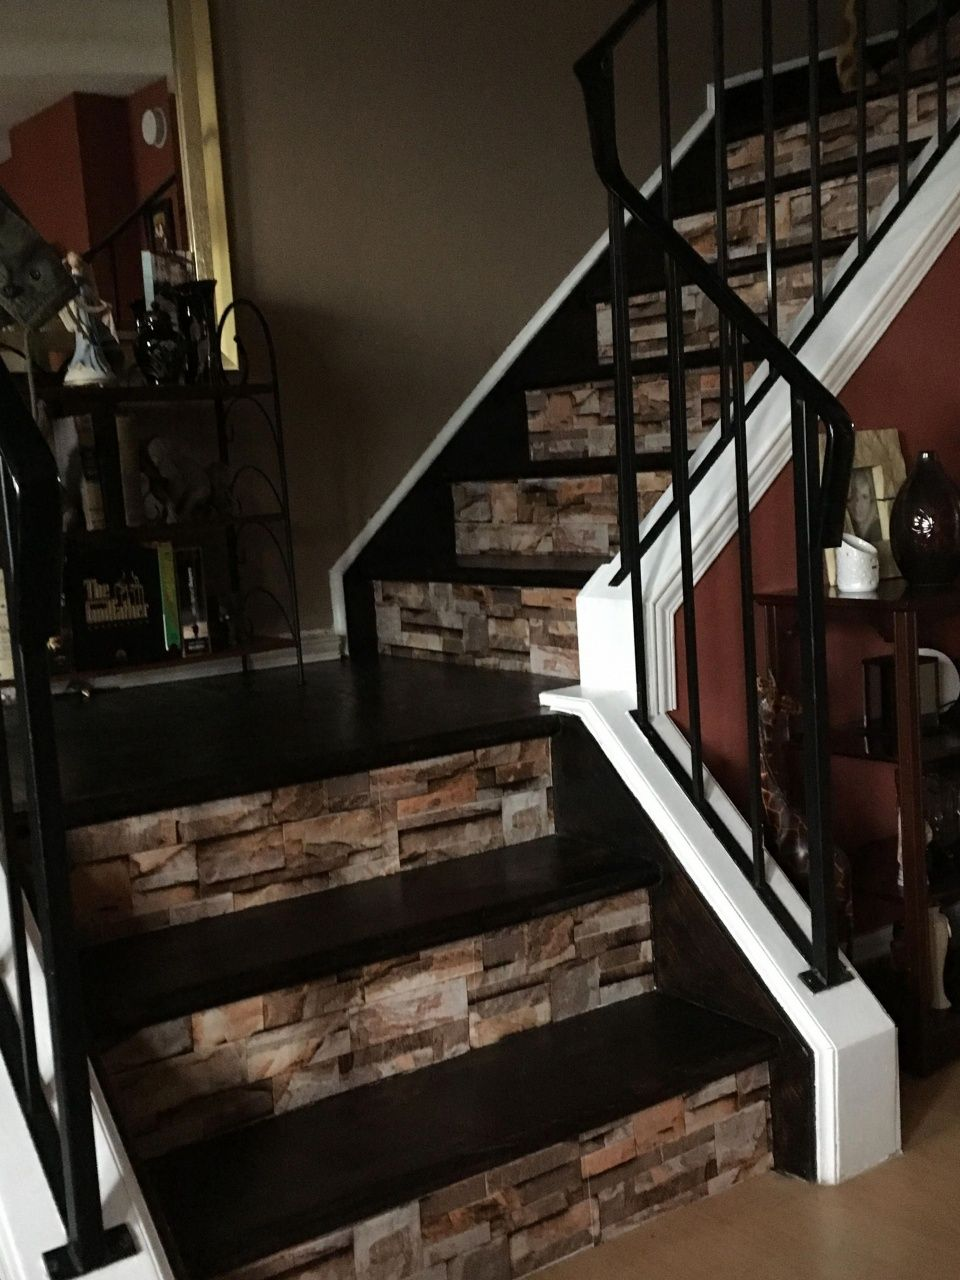 Rubber Stair Tread Covers Home Depot In 2020 Stairs Design Staircase Remodel Basement Stairs